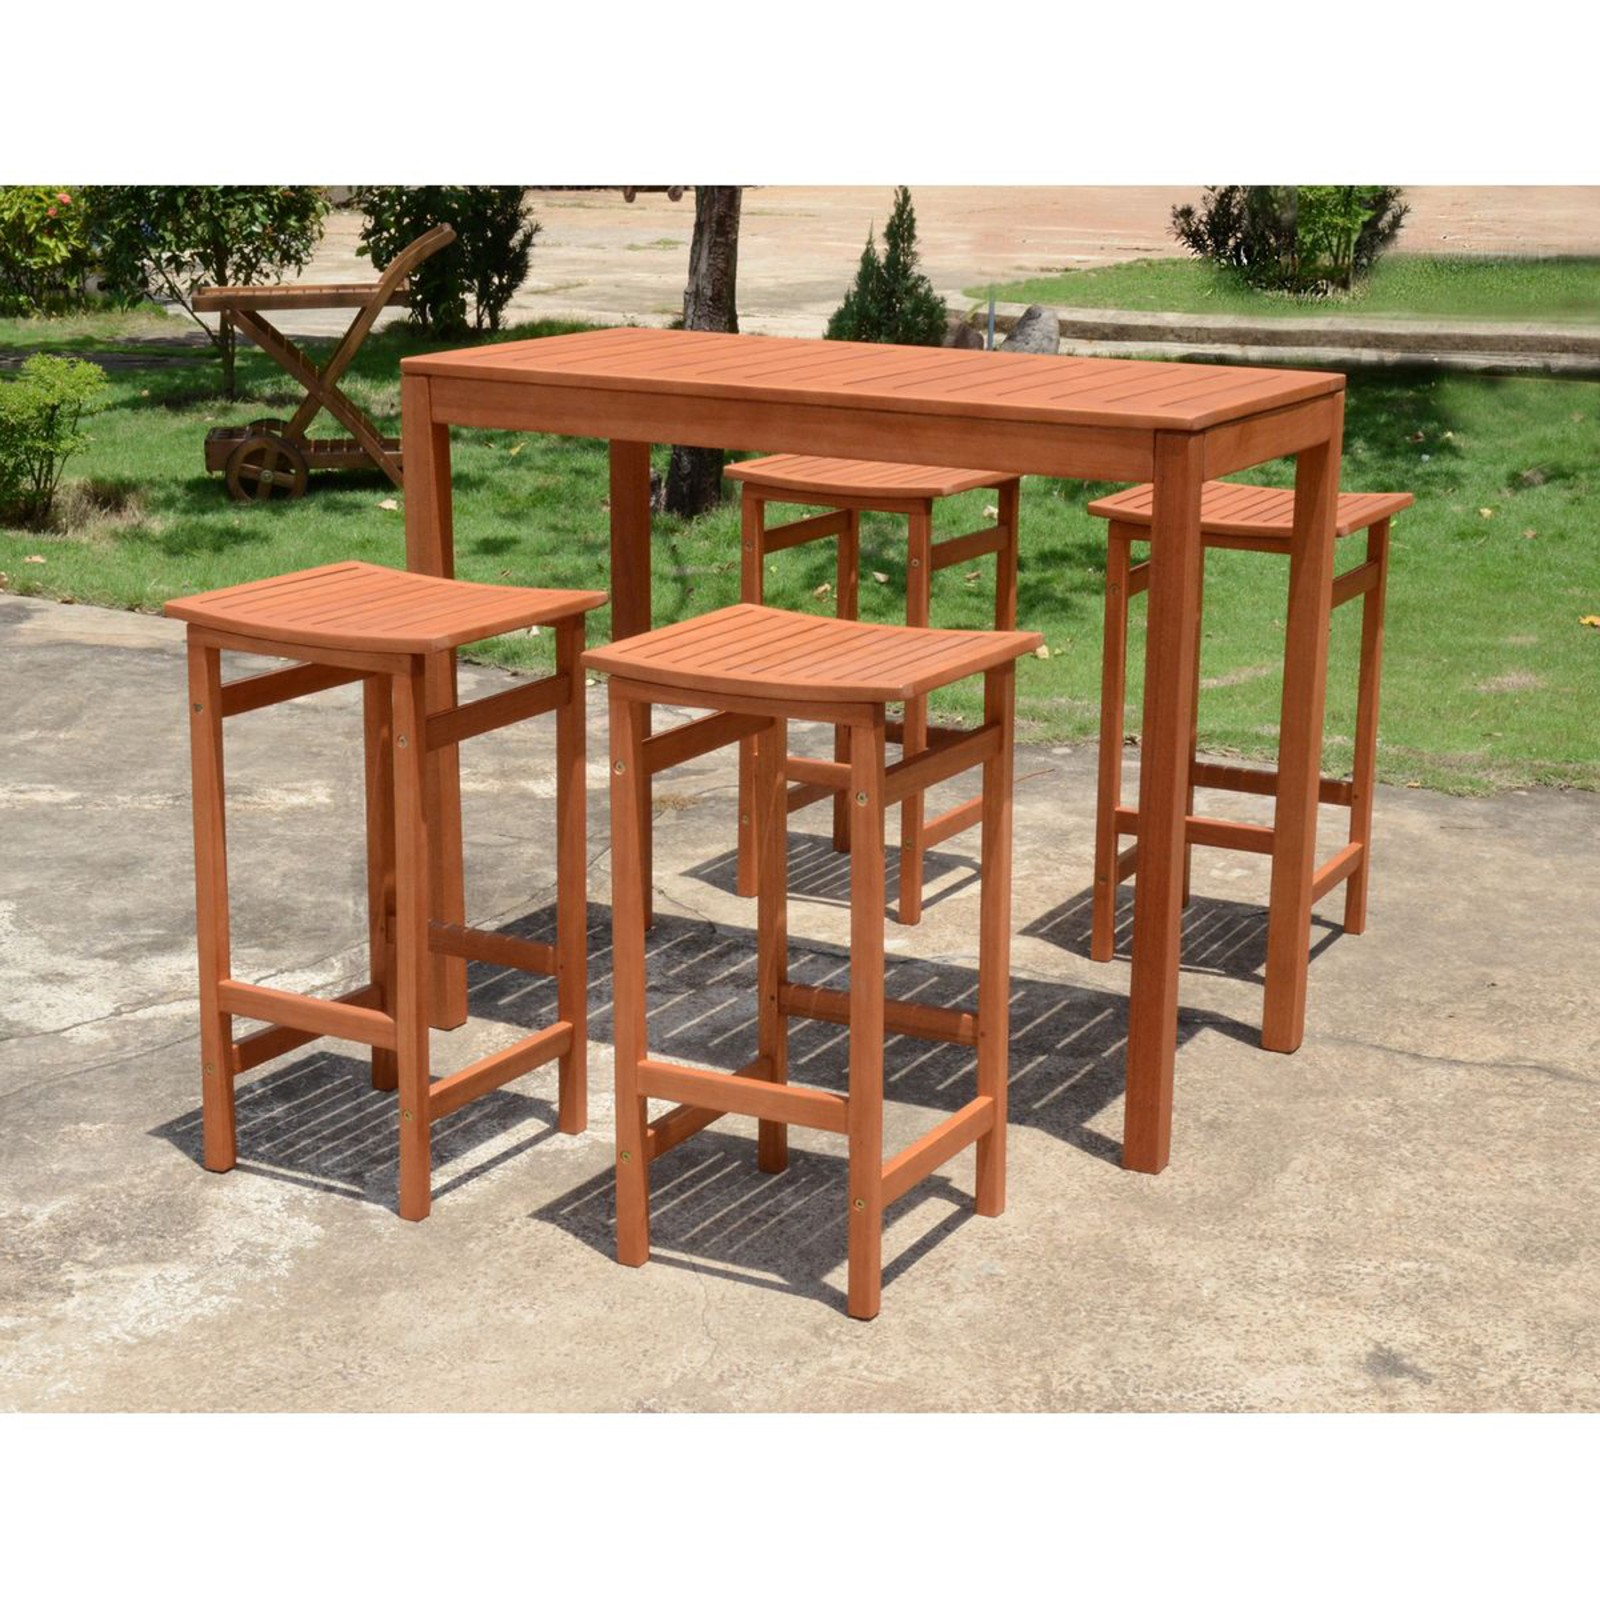 bar set bartisch barhocker garnitur sitzgruppe holz garten hocker stuhl tisch ebay. Black Bedroom Furniture Sets. Home Design Ideas